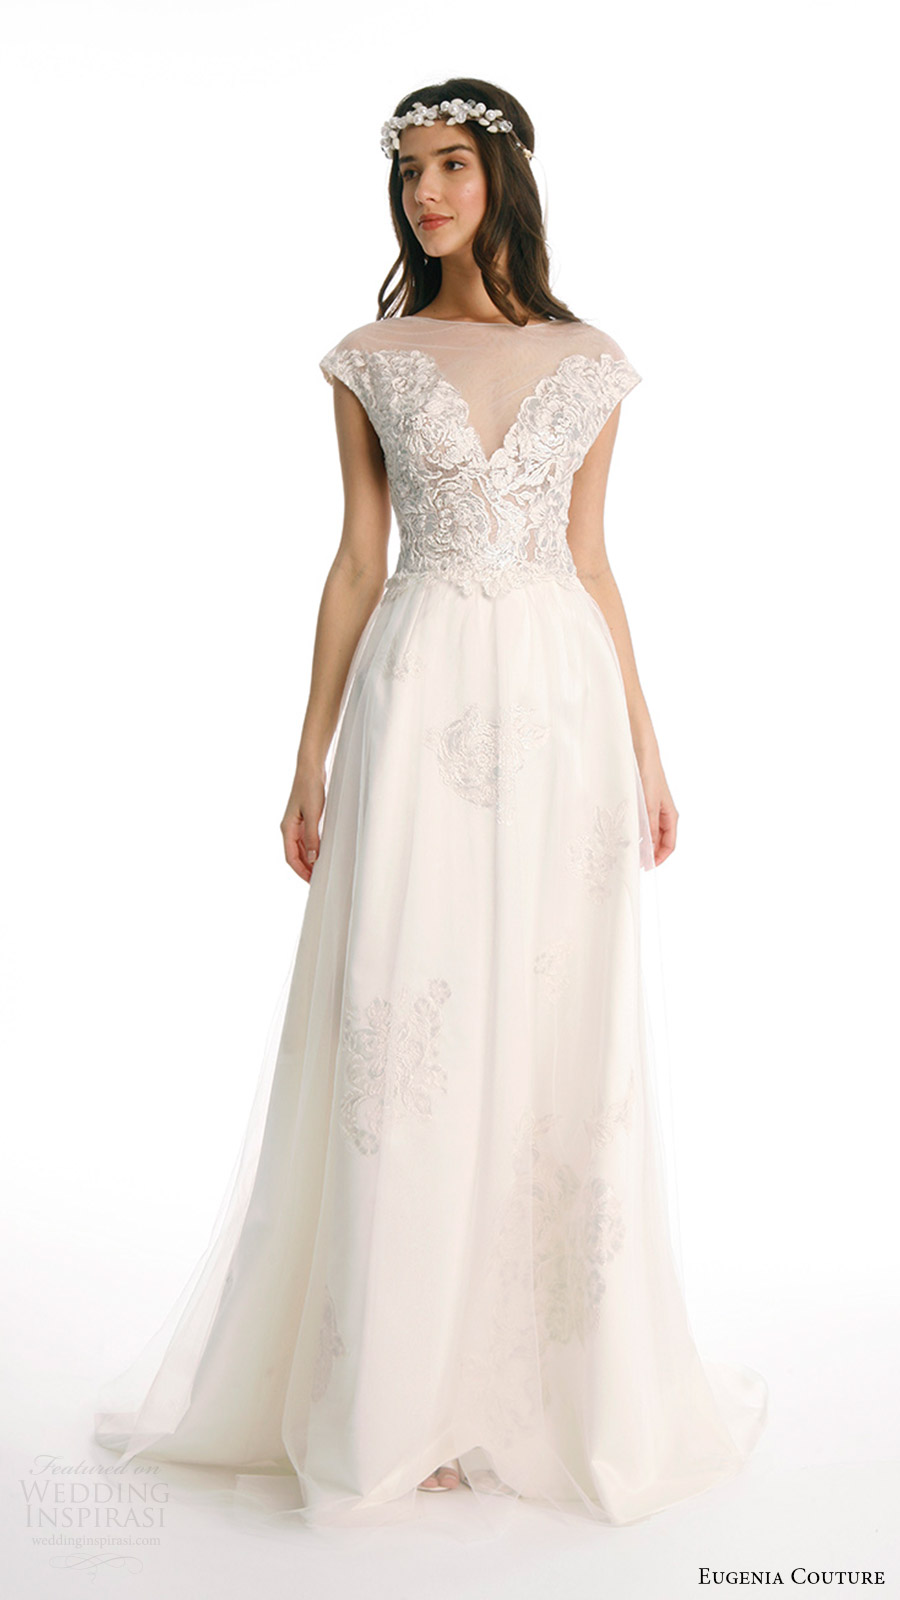 eugenia couture joy bridal spring 2017 cap sleeves illusion jewel neck painted lace aline wedding dress (sylvie anne) mv